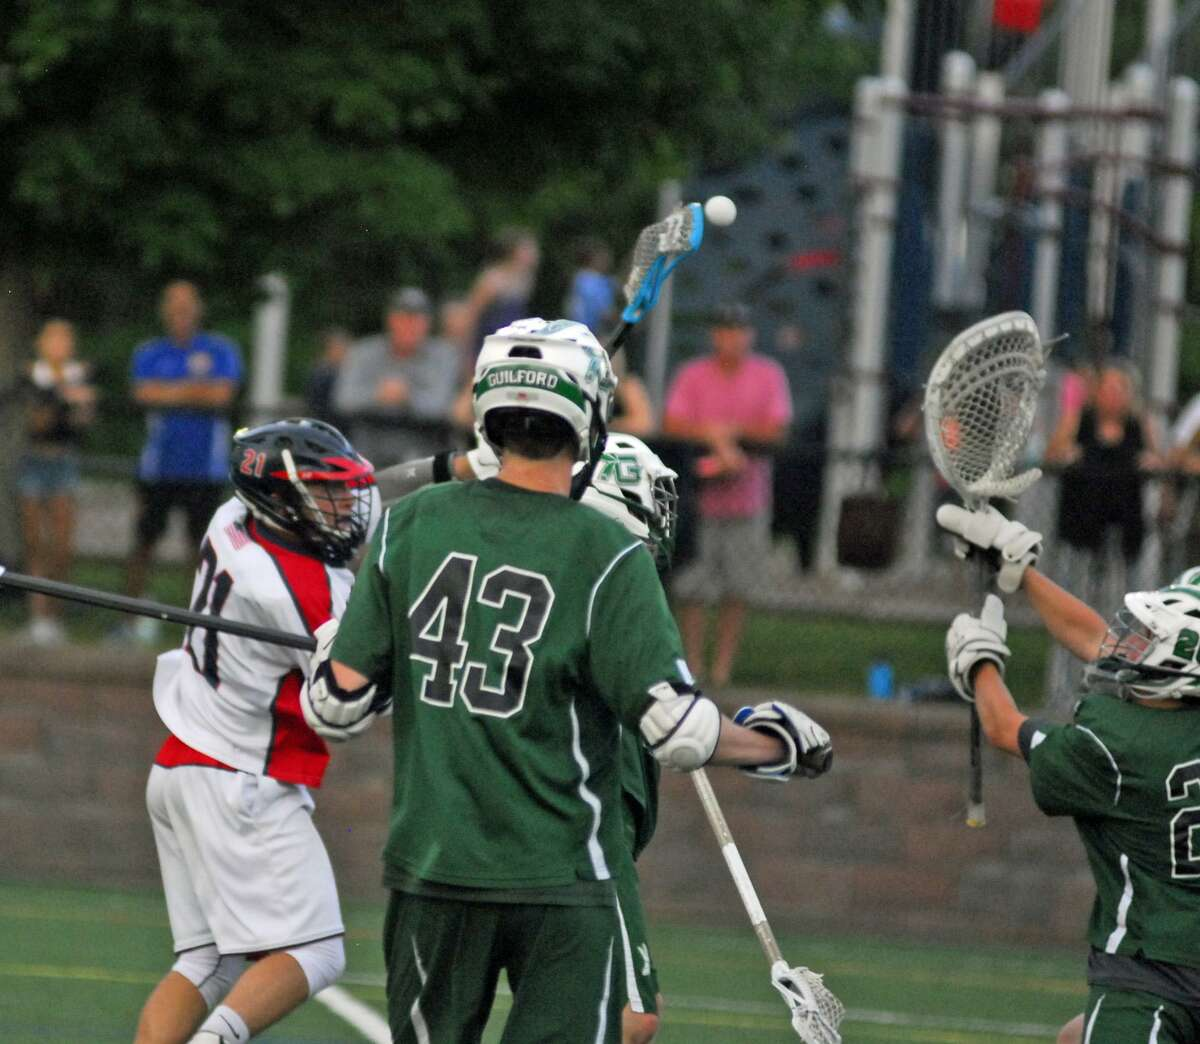 Action from New Fairfield's 13-12 win over Guilford in the Class M quarterfinals on Saturday.